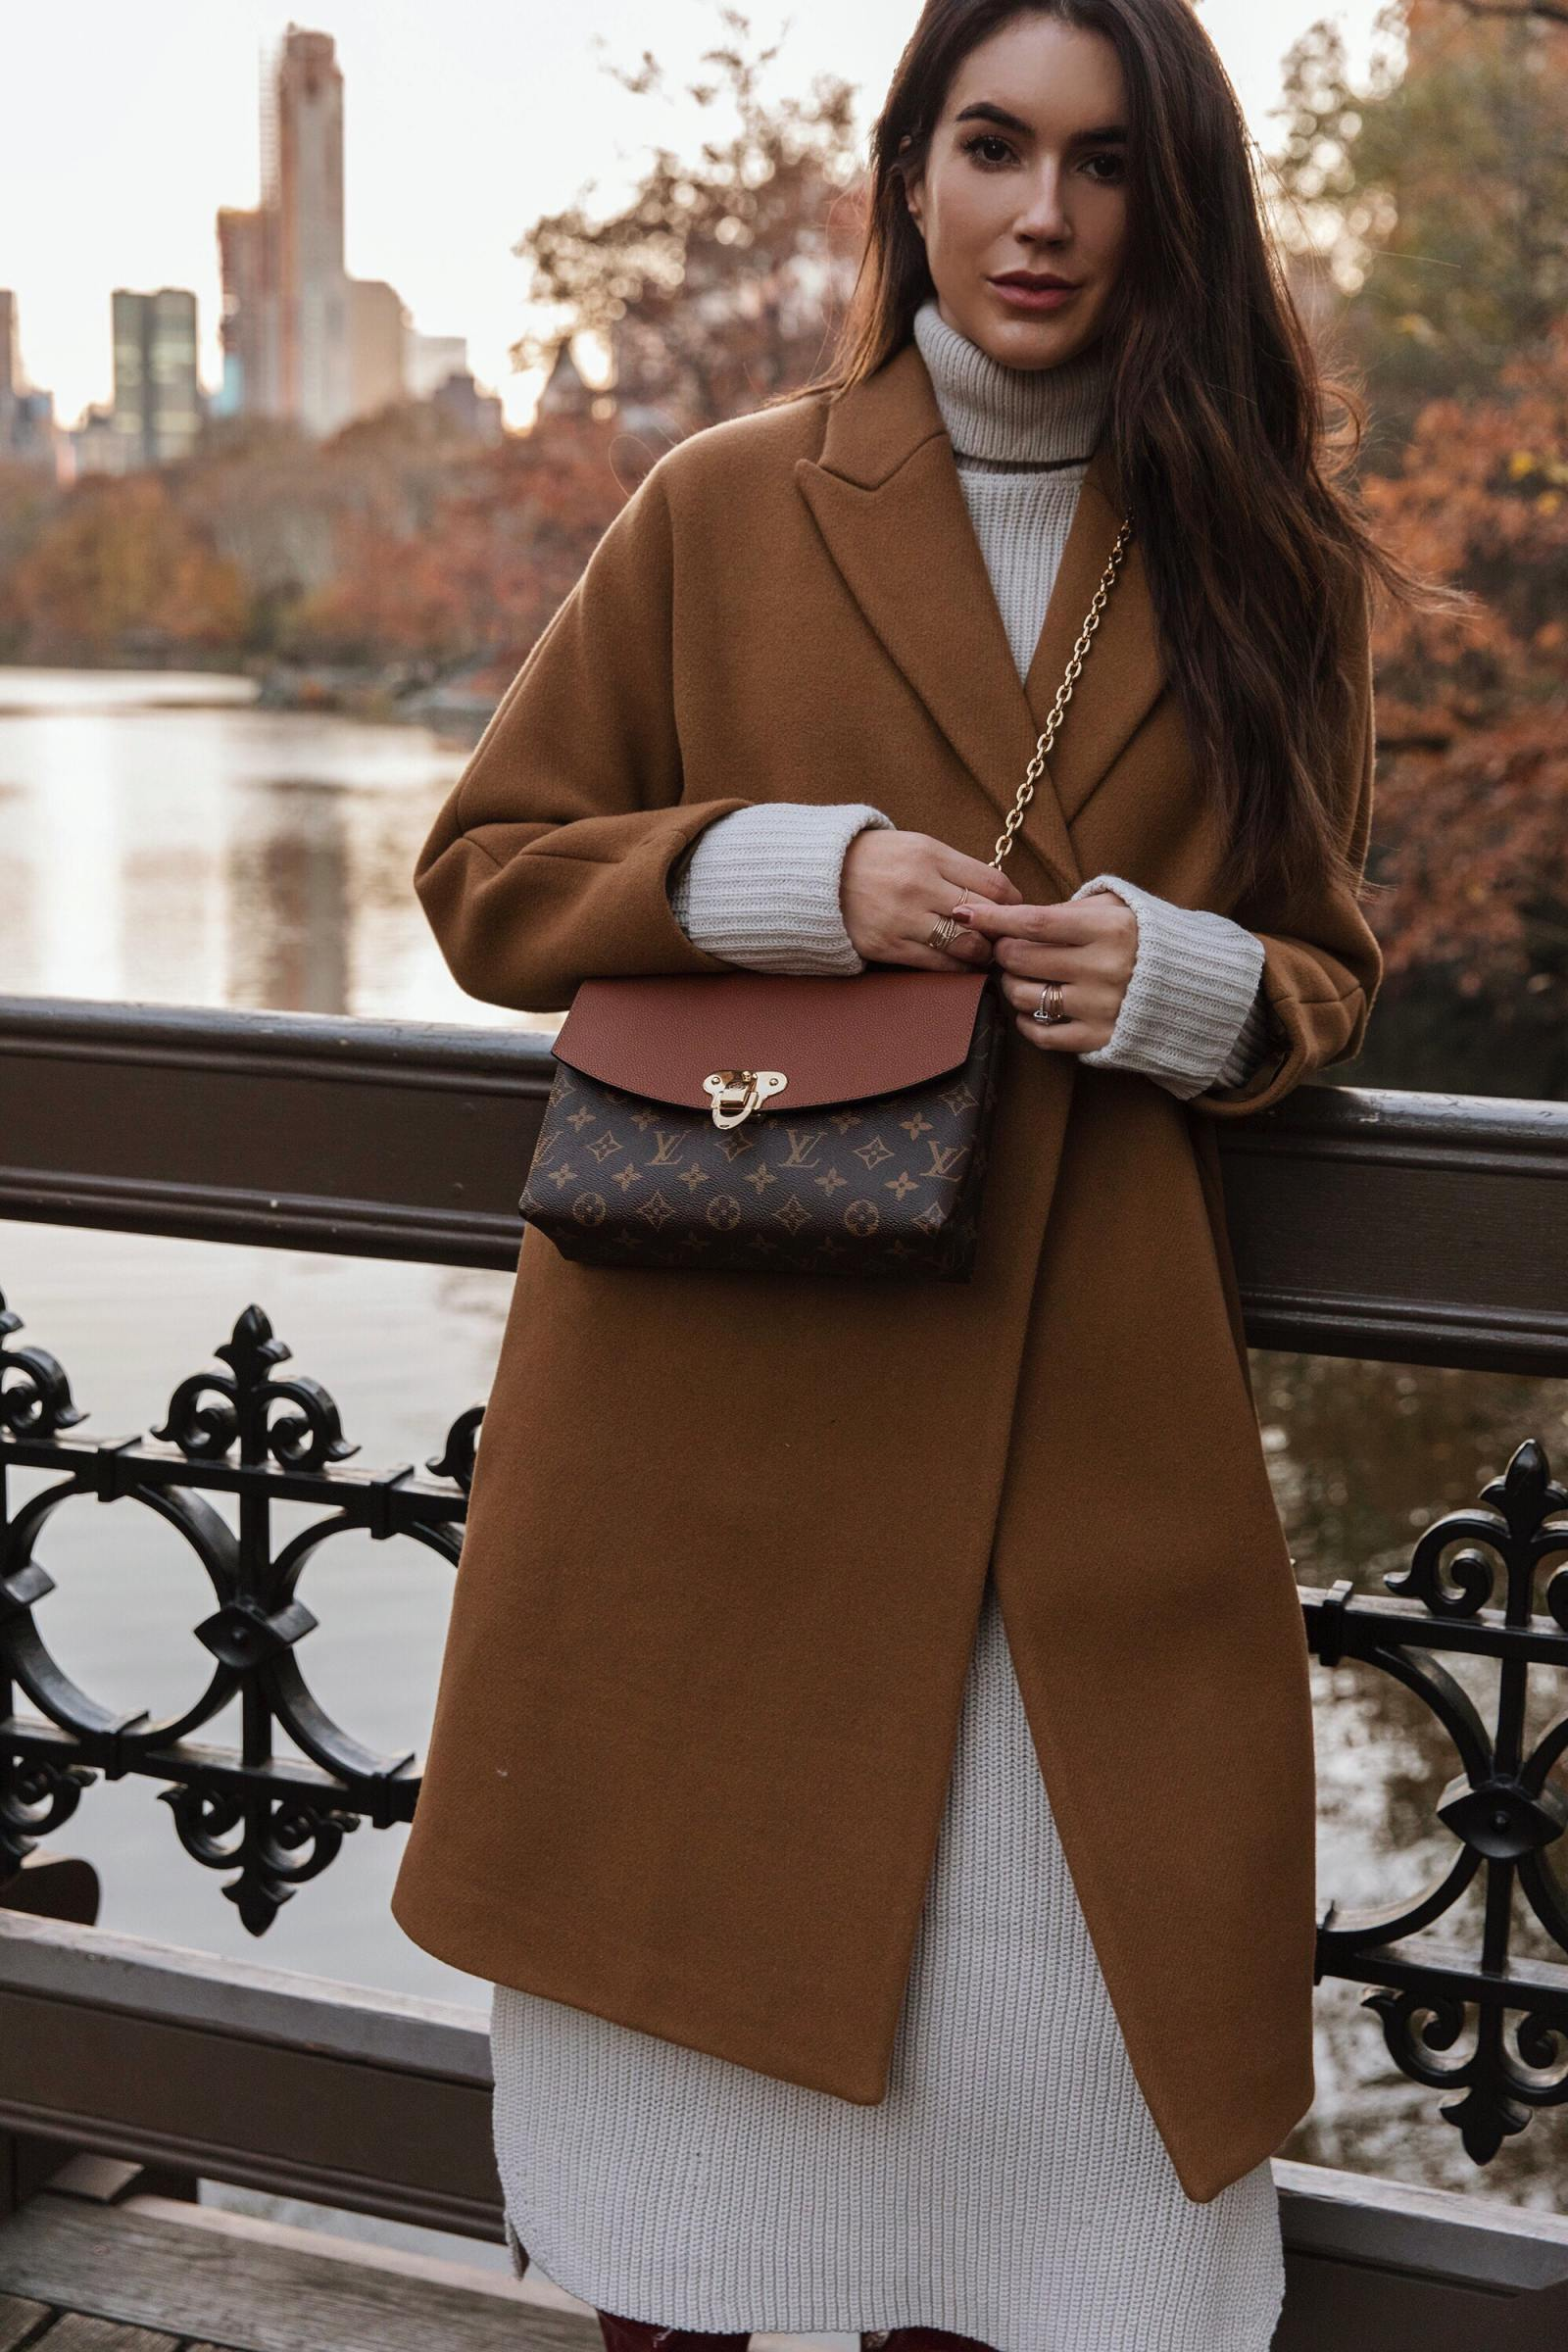 louis-vuitton-saint-placide-bag-thrifts-and-threads